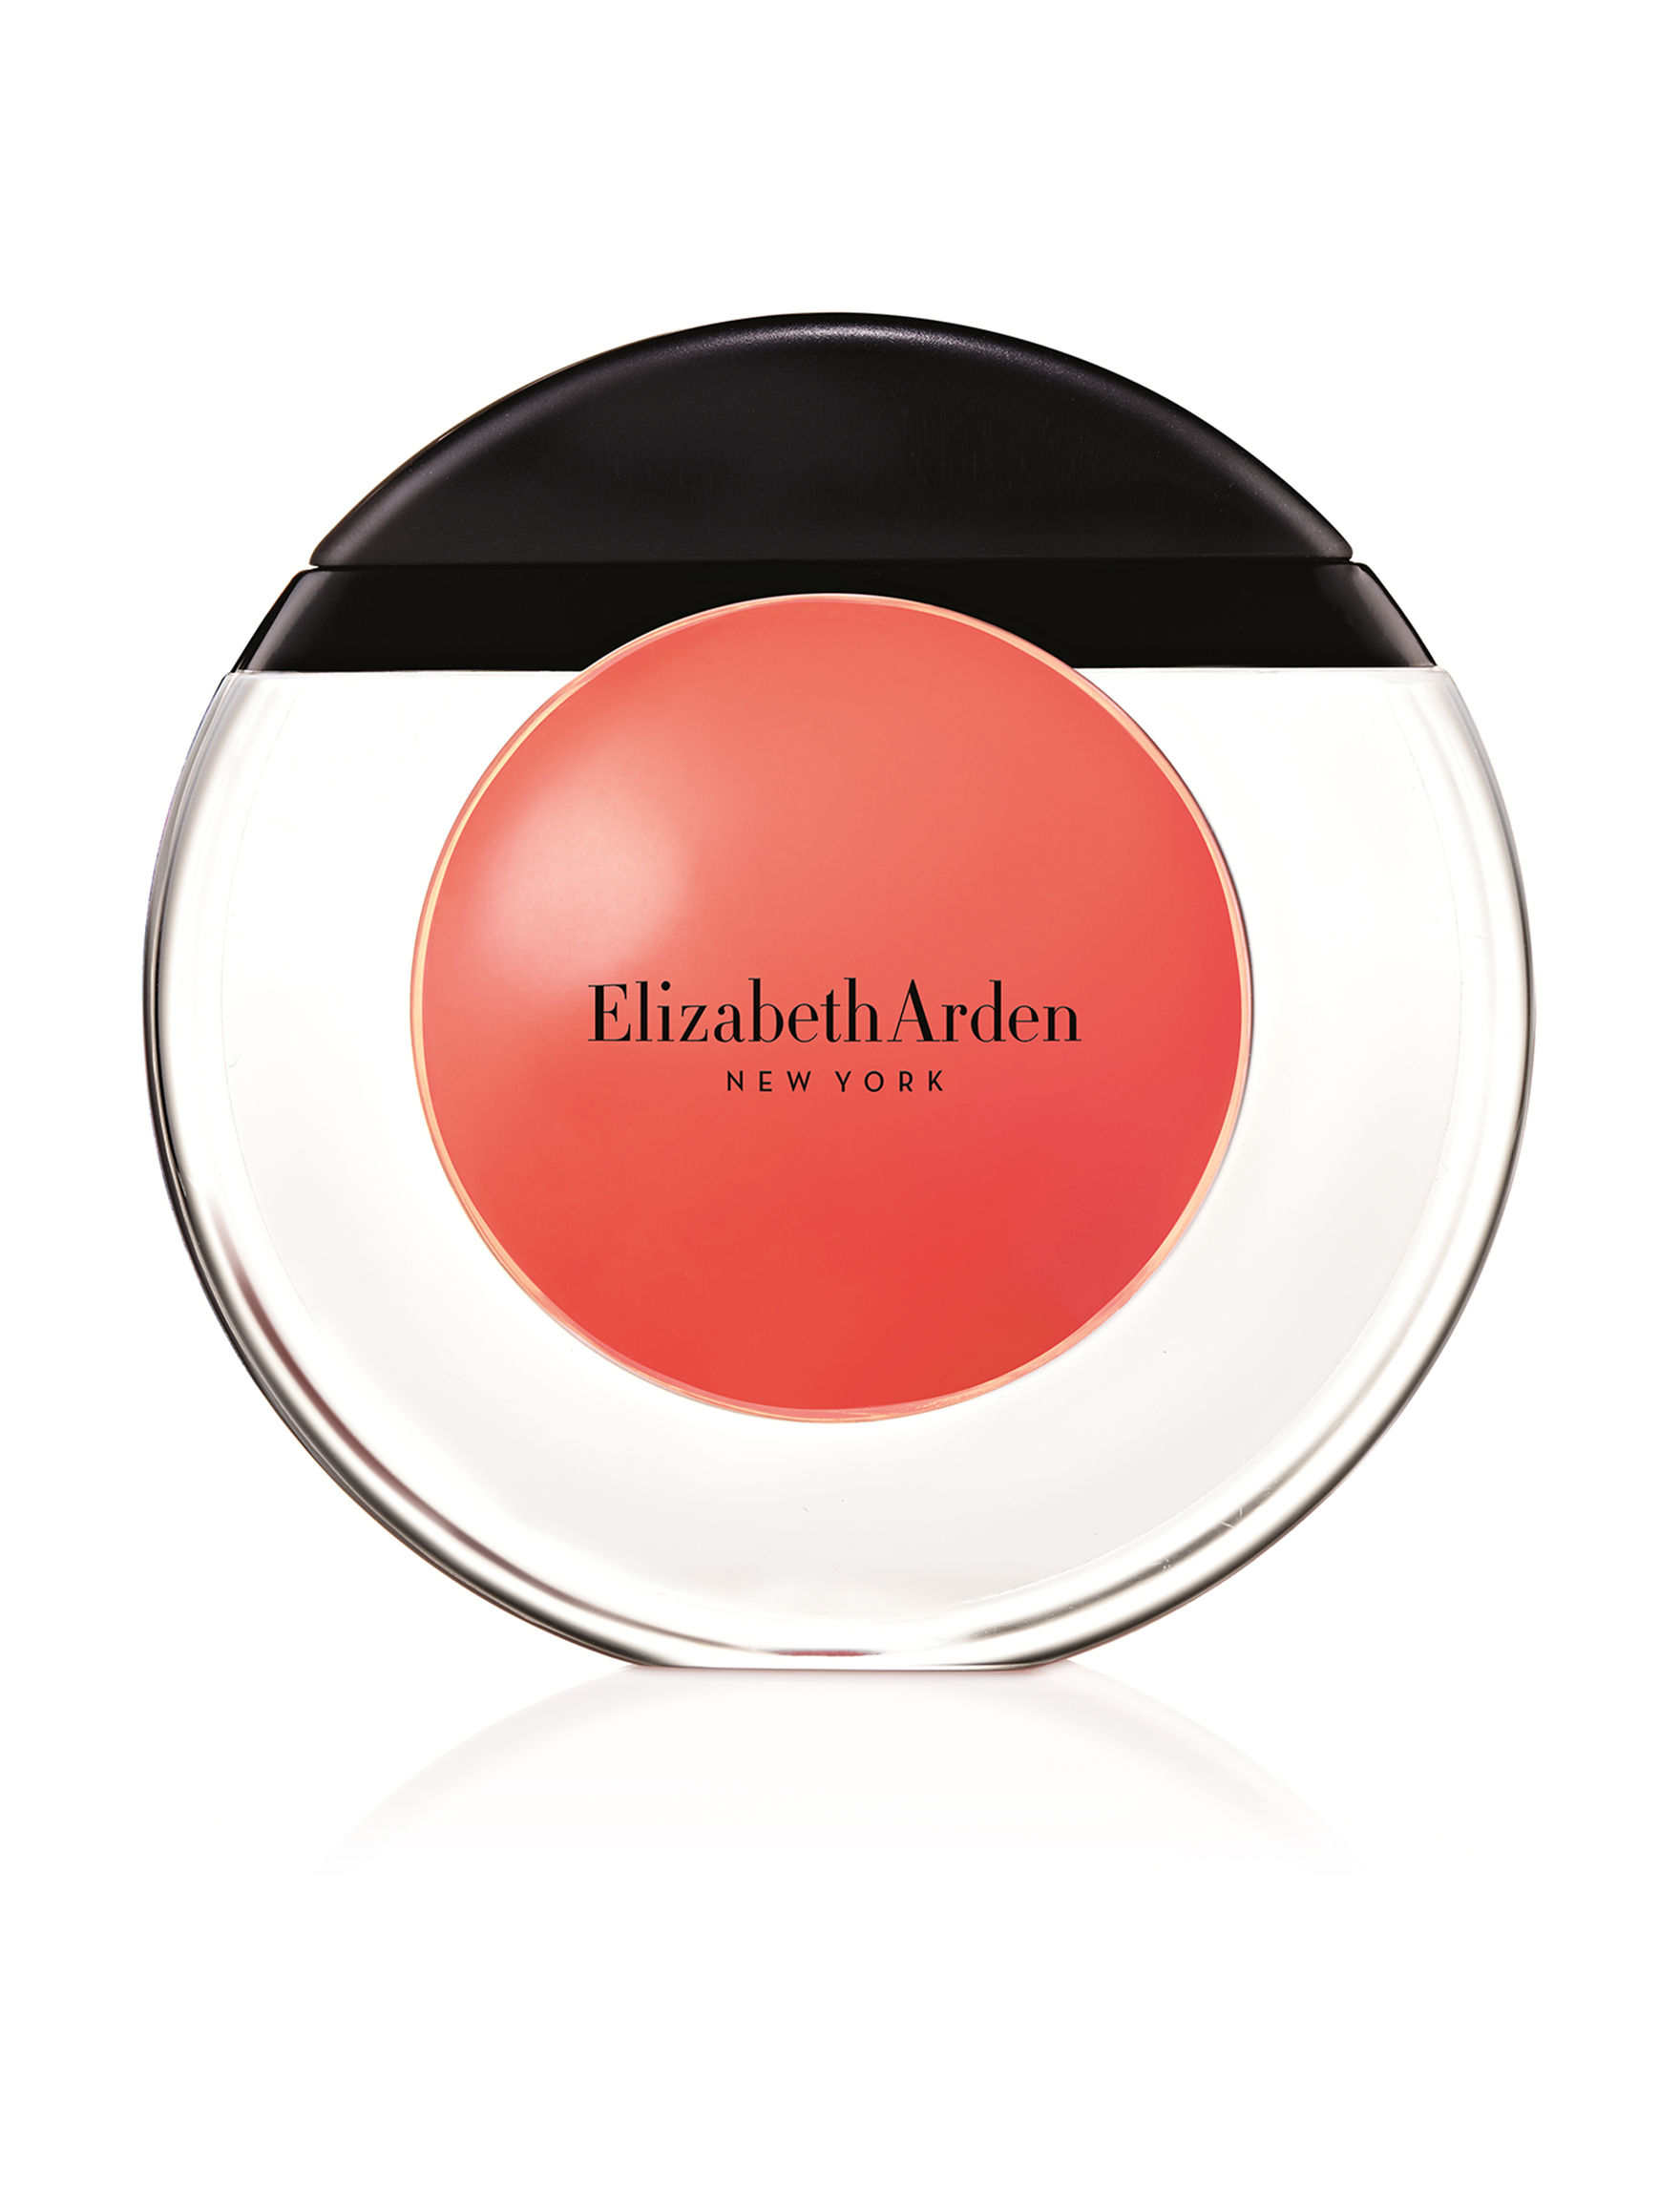 Elizabeth Arden Coral Caress Lips Lip Gloss